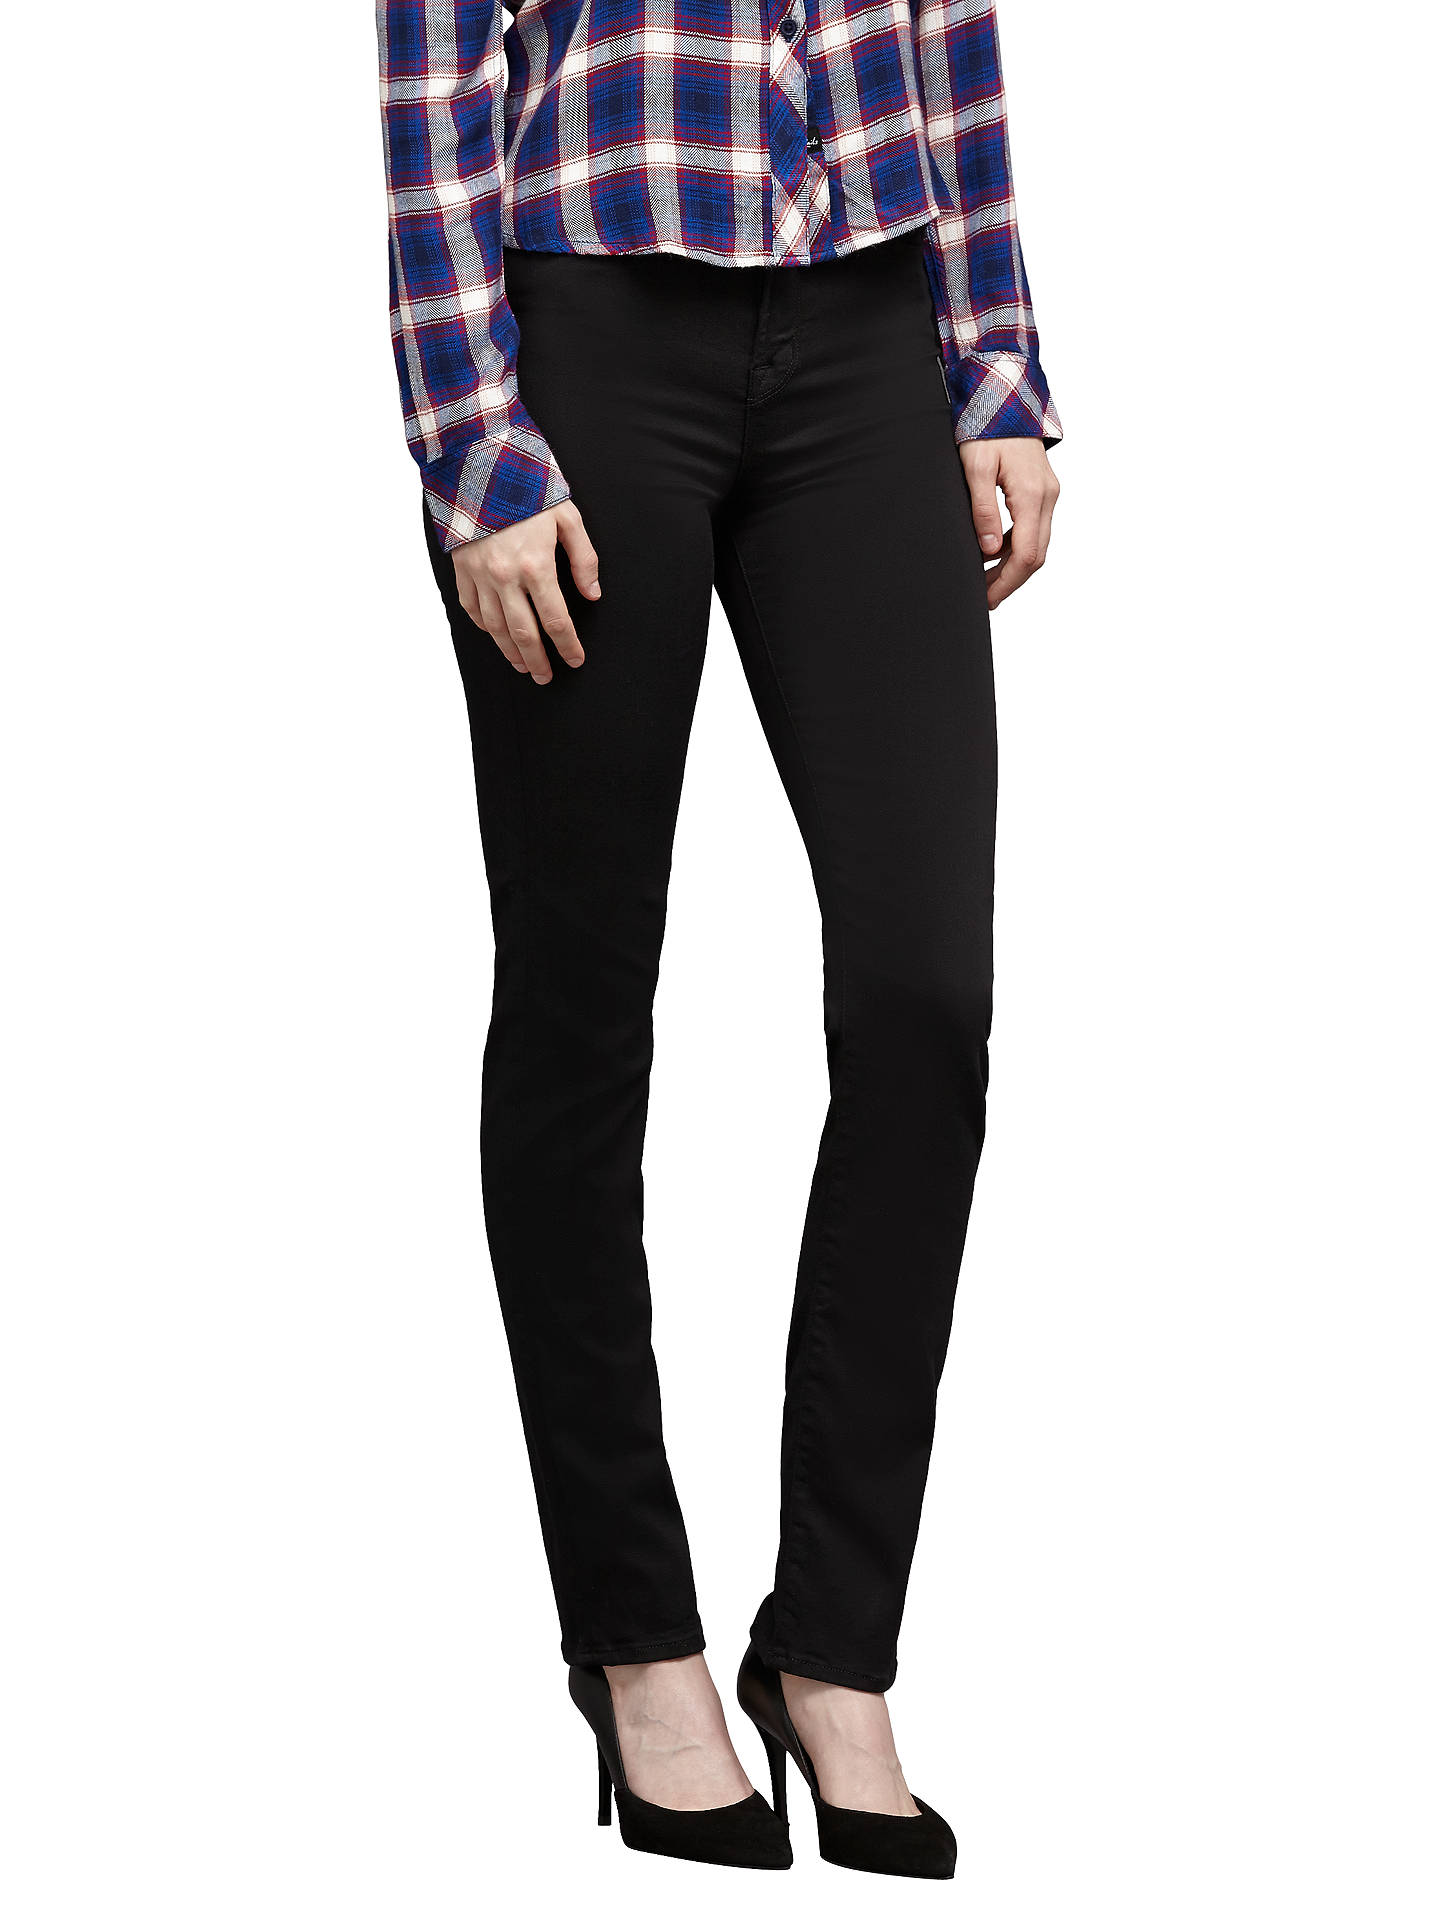 e92056f5bf30 Buy J Brand Maria High Rise Skinny Straight Jeans, Seriously Black, 24  Online at ...